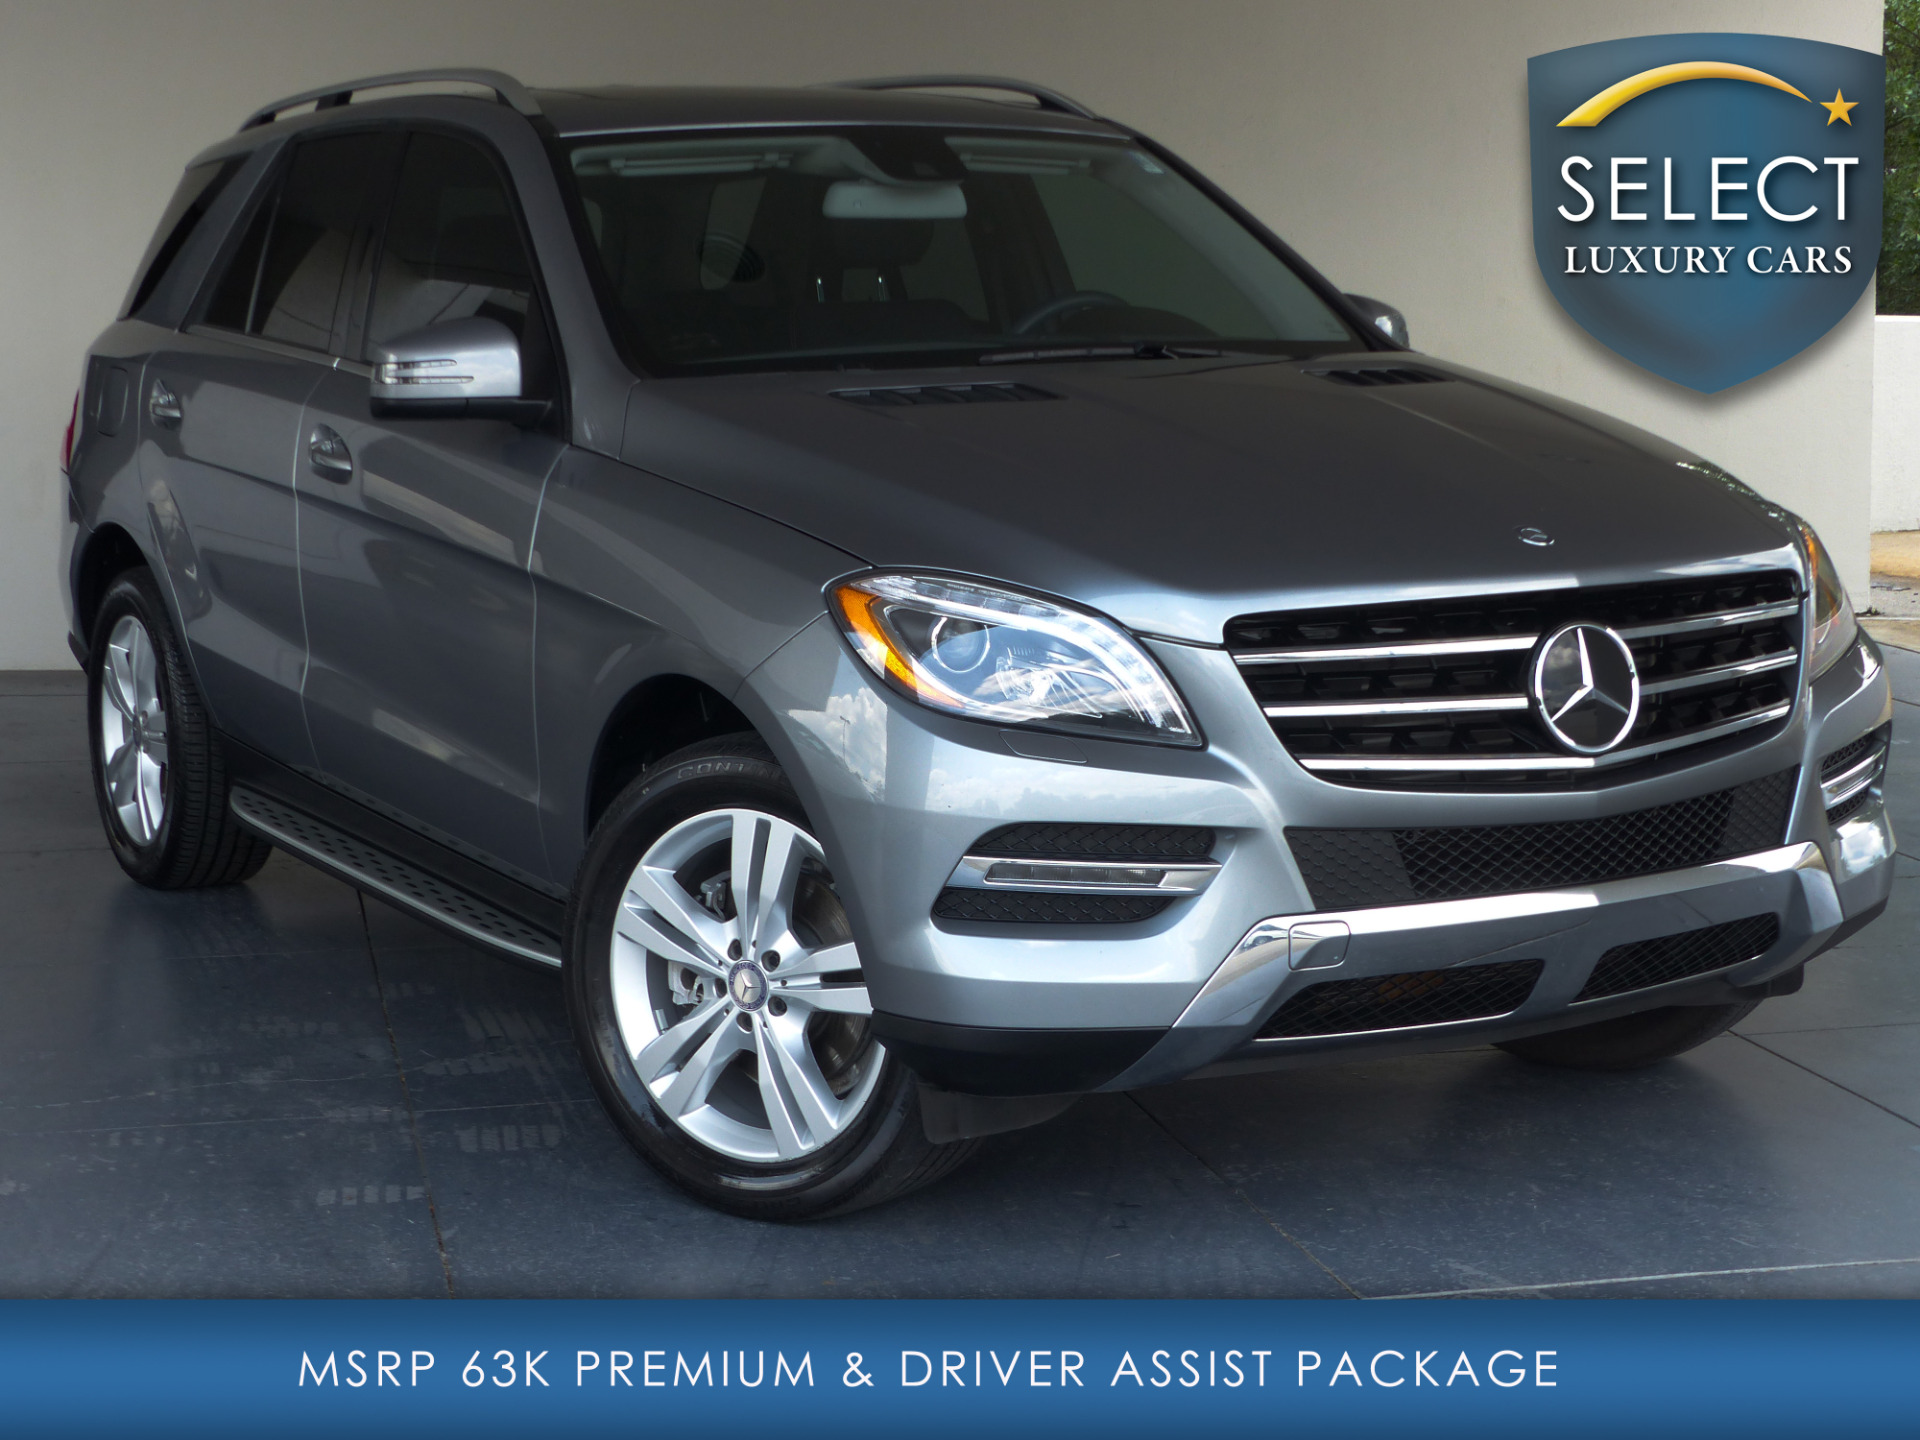 Used 2013 mercedes benz m class ml350 marietta ga for Mercedes benz m class ml350